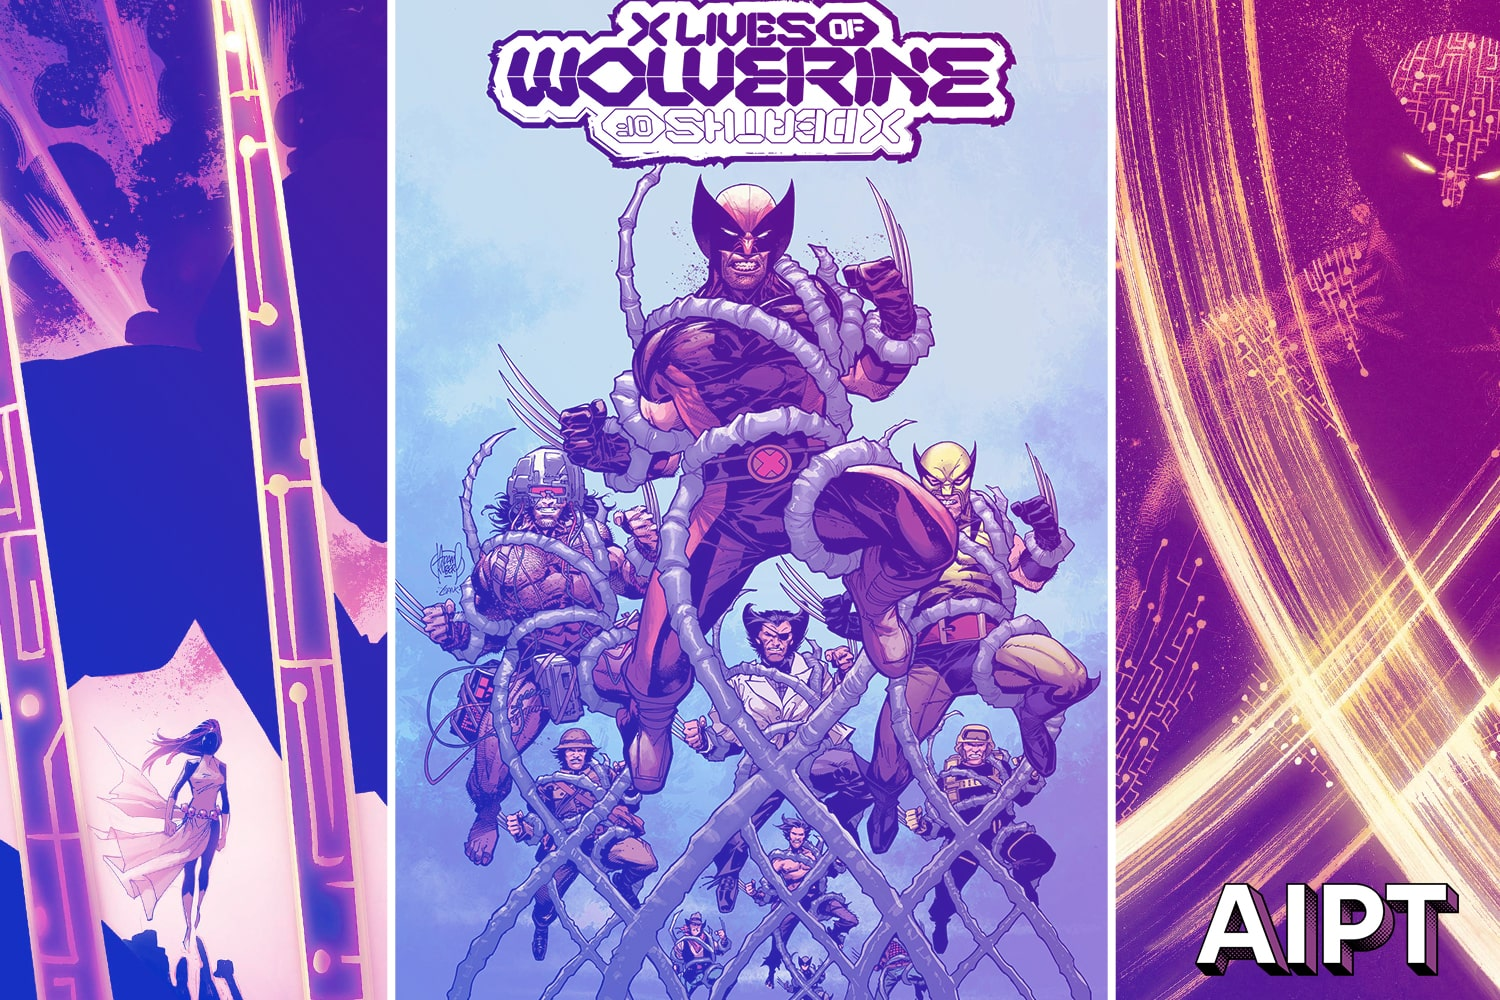 Wolverine traveling through time in 'X Lives of Wolverine' and X Deaths of Wolverine' in 2022